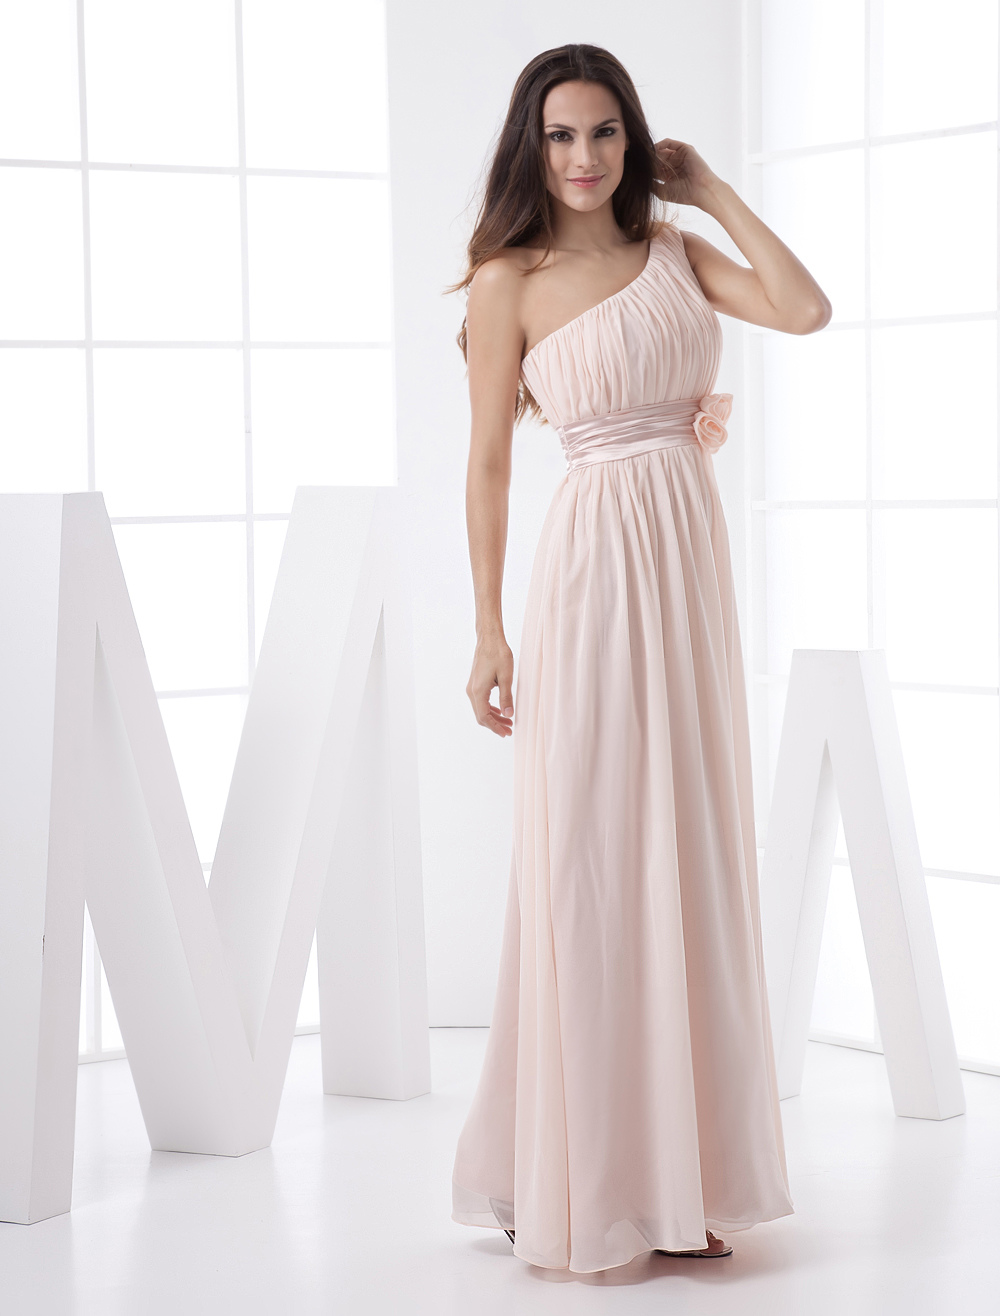 Blush Pink Peach Bridesmaid Dress Chiffon One Shoulder Empire Waist Flower Sash Maxi Prom Dress